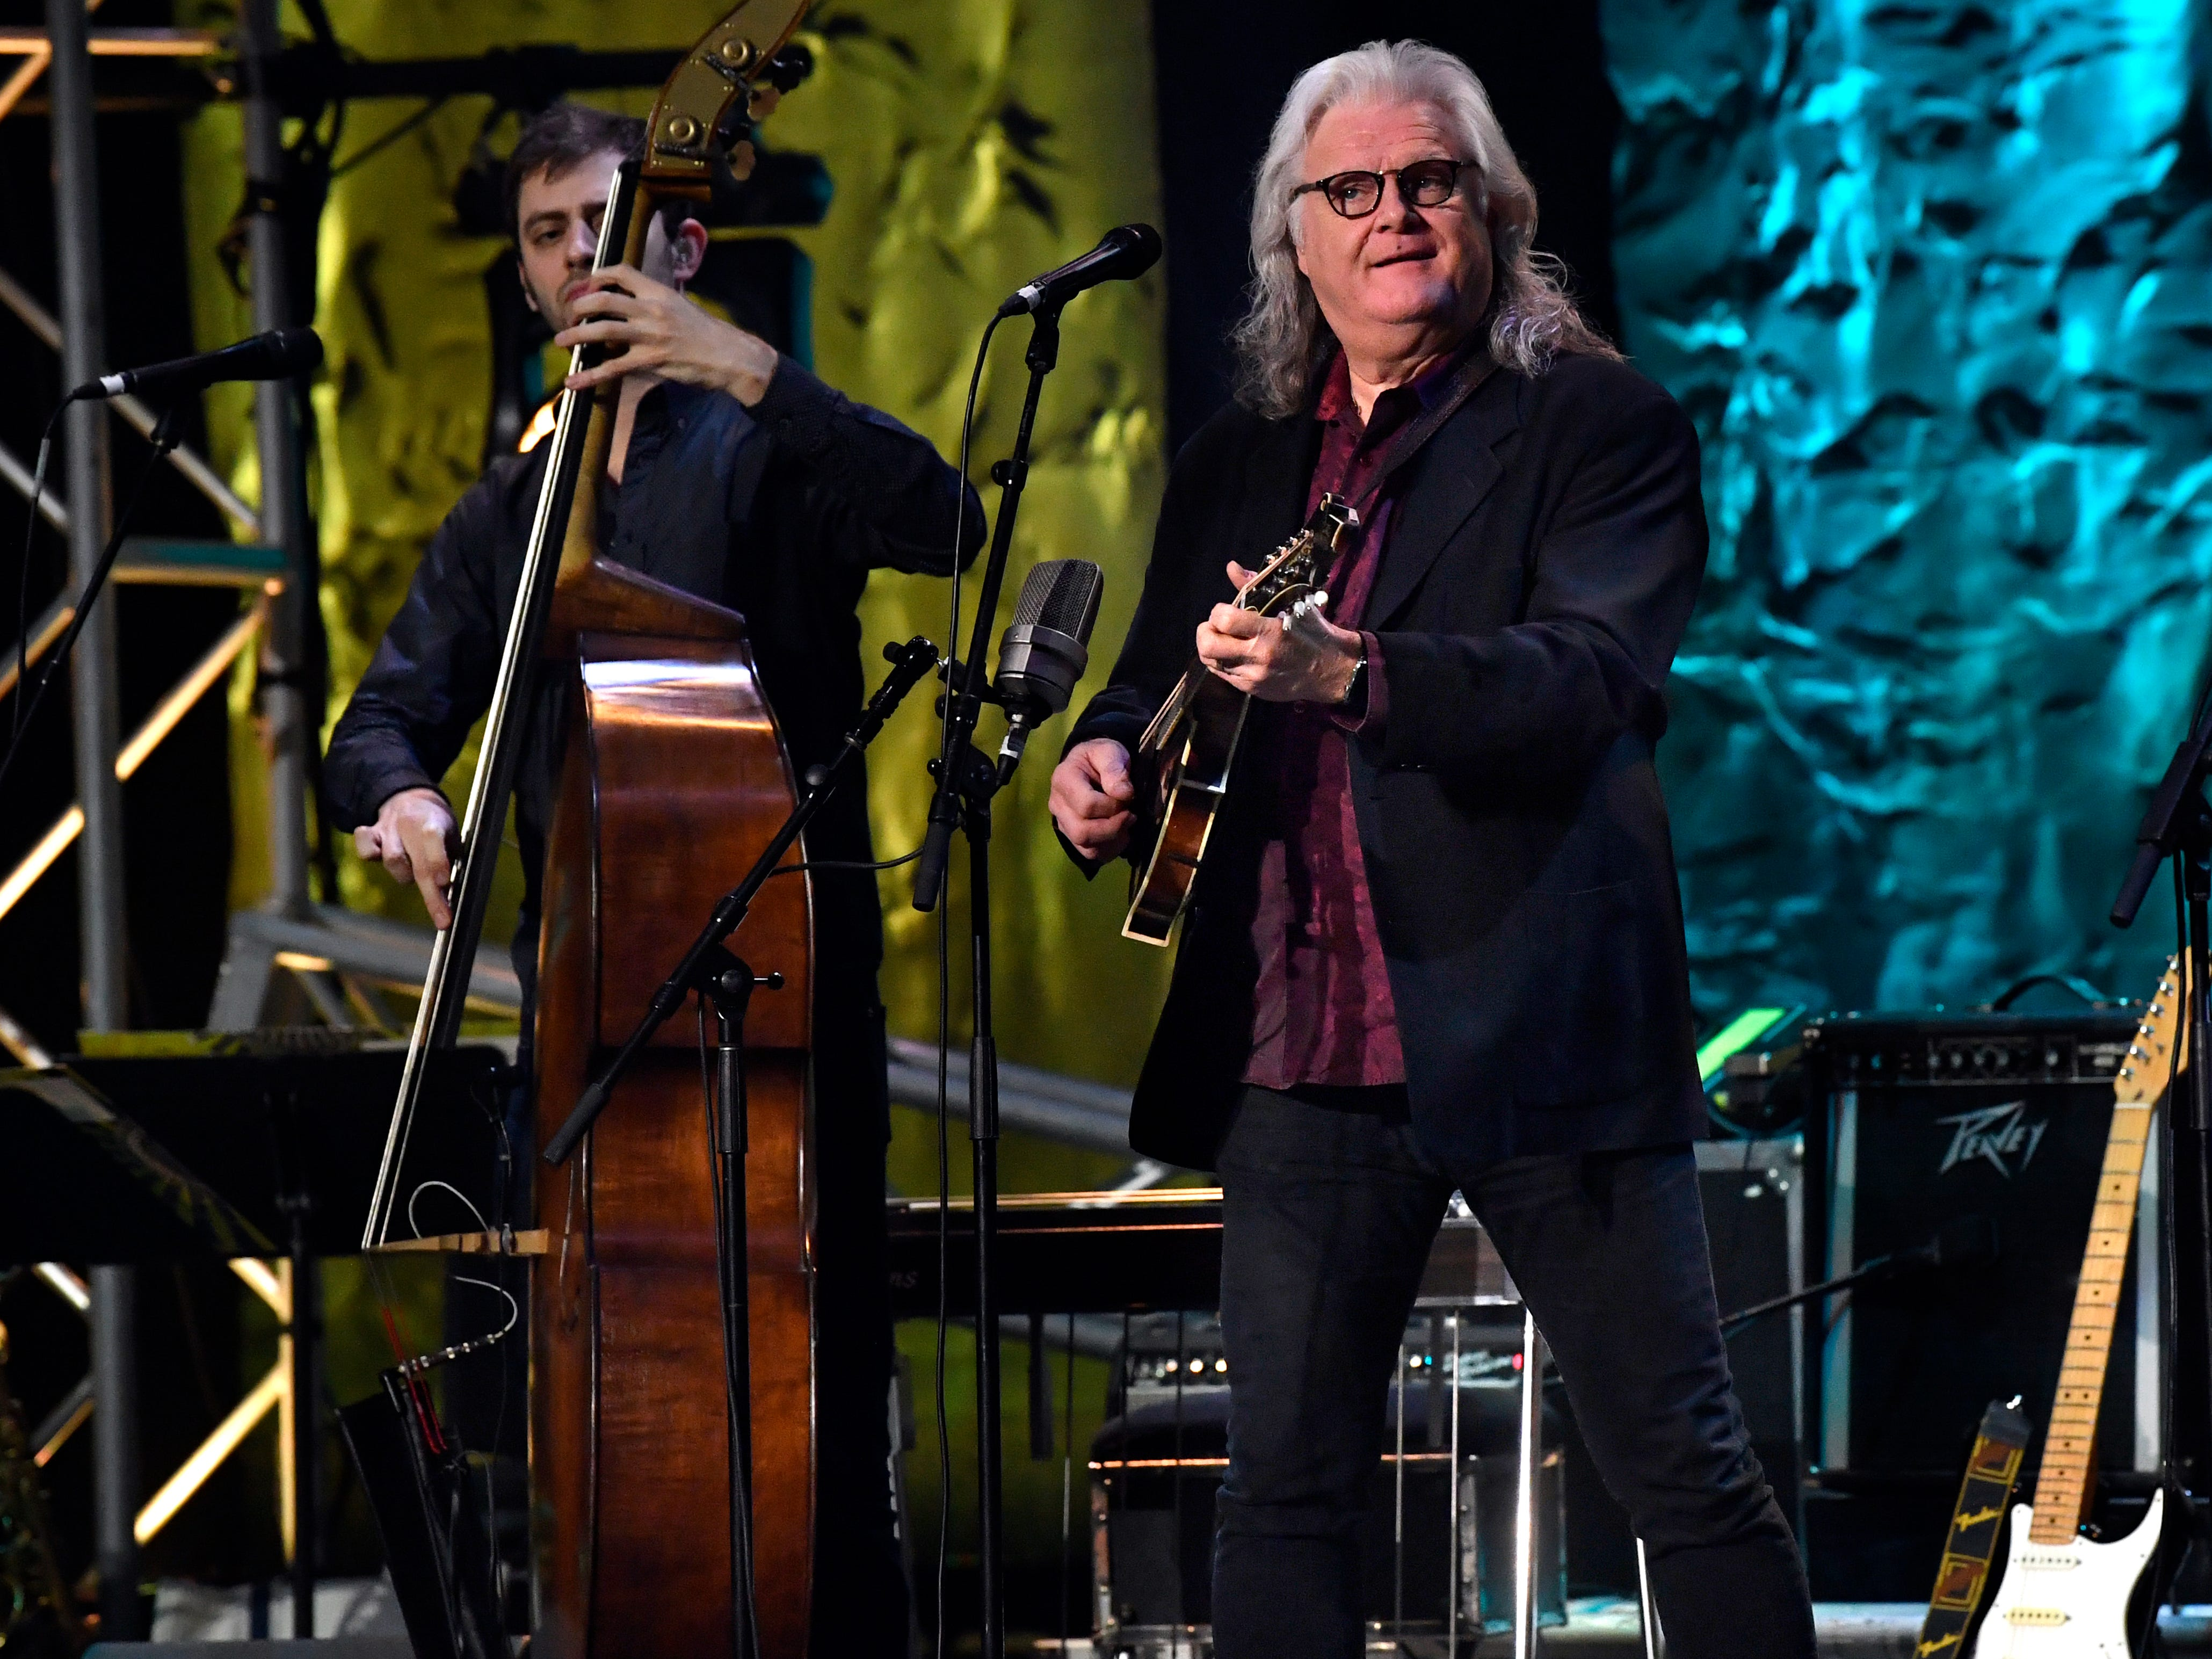 Ricky Skaggs performed an evening of bluegrass-inspired music during Saturday's West Texas Rehabilitation 2019 Telethon & Auction Jan. 20, 2019. This was the 49th year for the benefit.